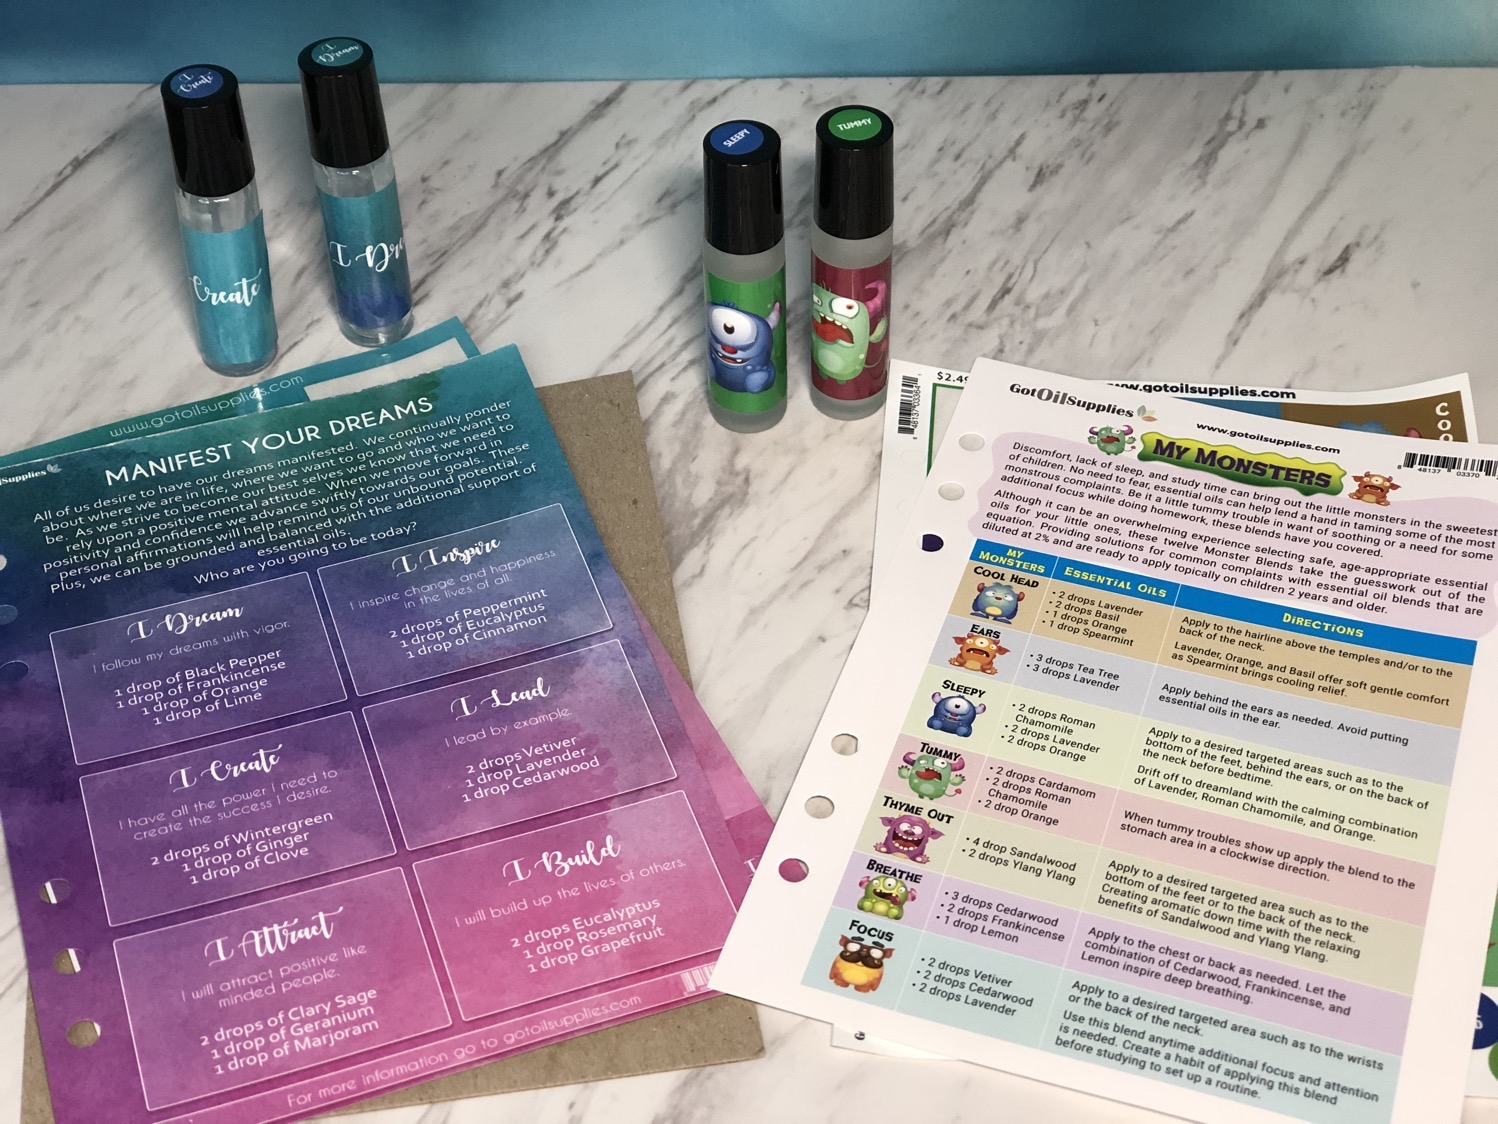 Manifest your dreams oily kit